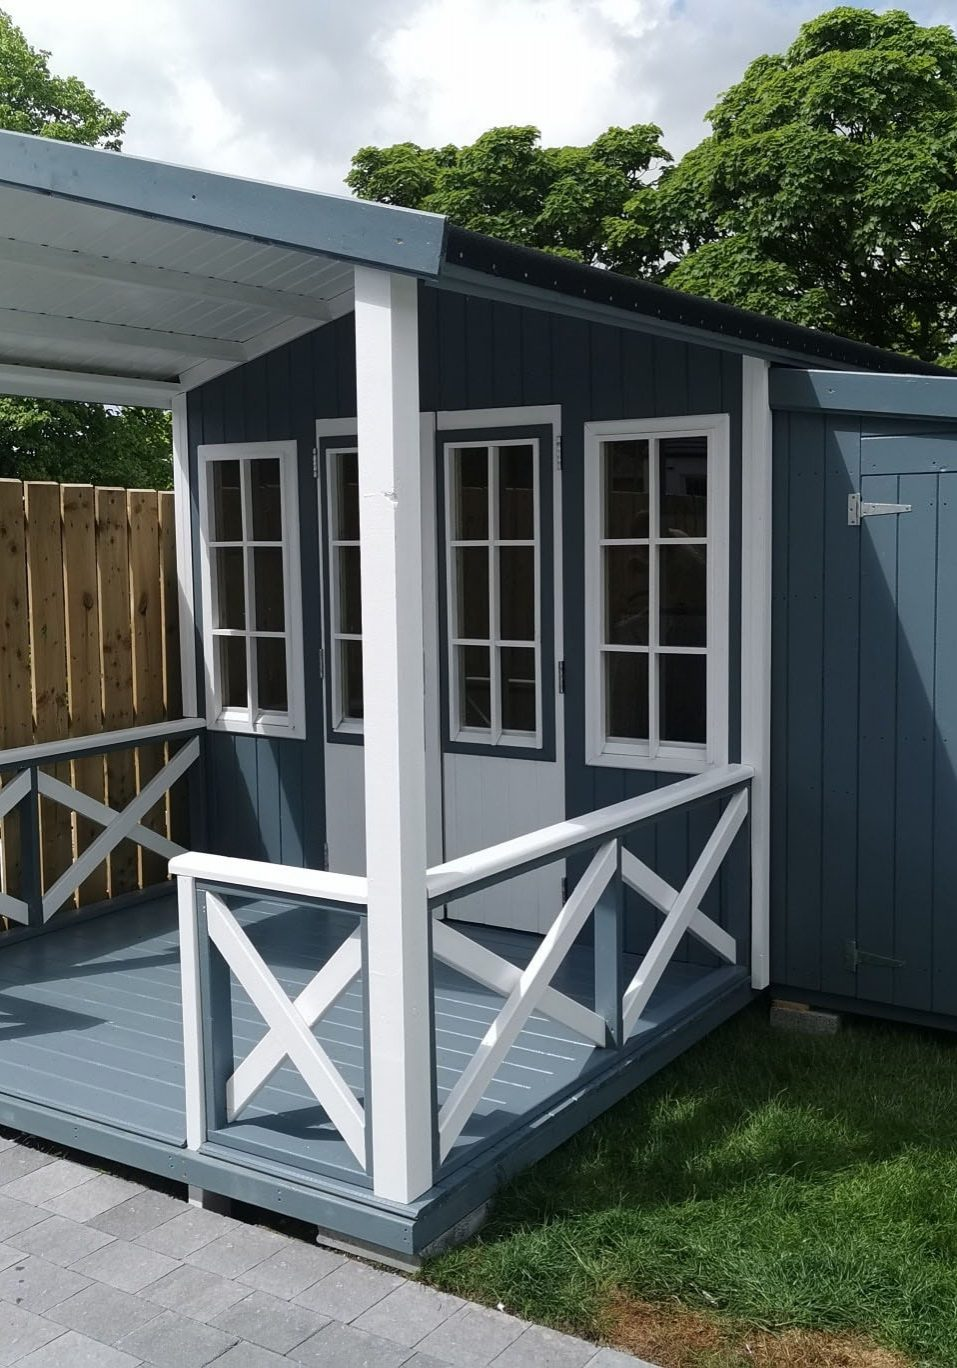 An image of a blue grey garden shed with a patio and French doors.